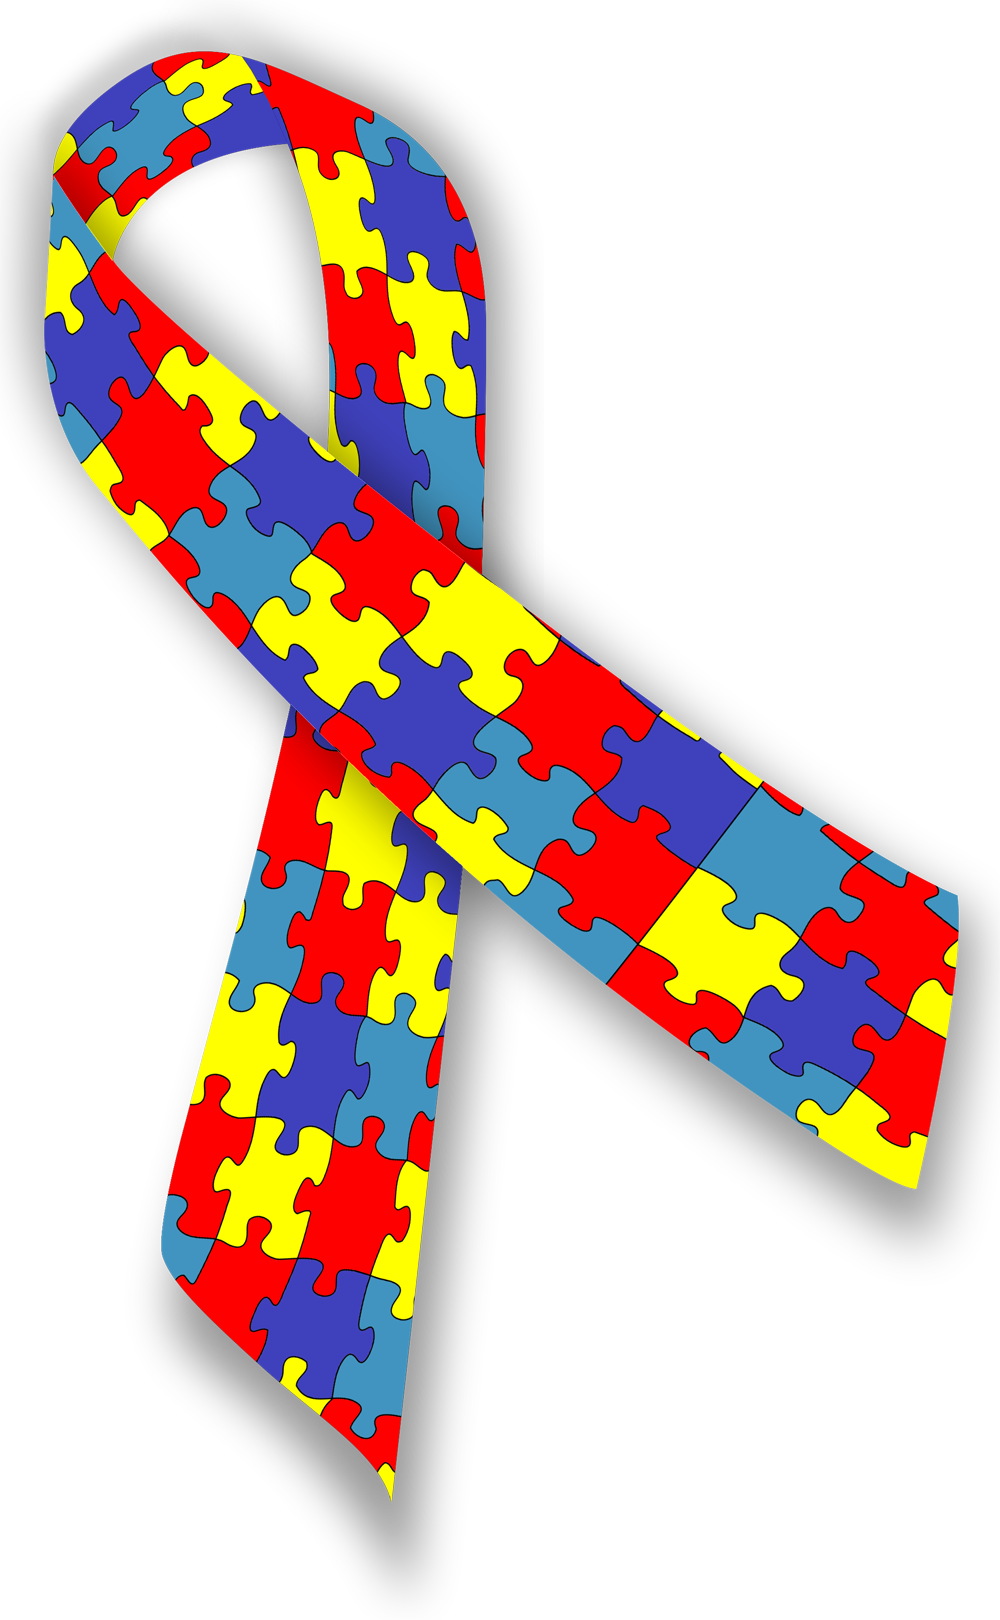 File:Autism Awareness Ribbon.png - Wikimedia Commons